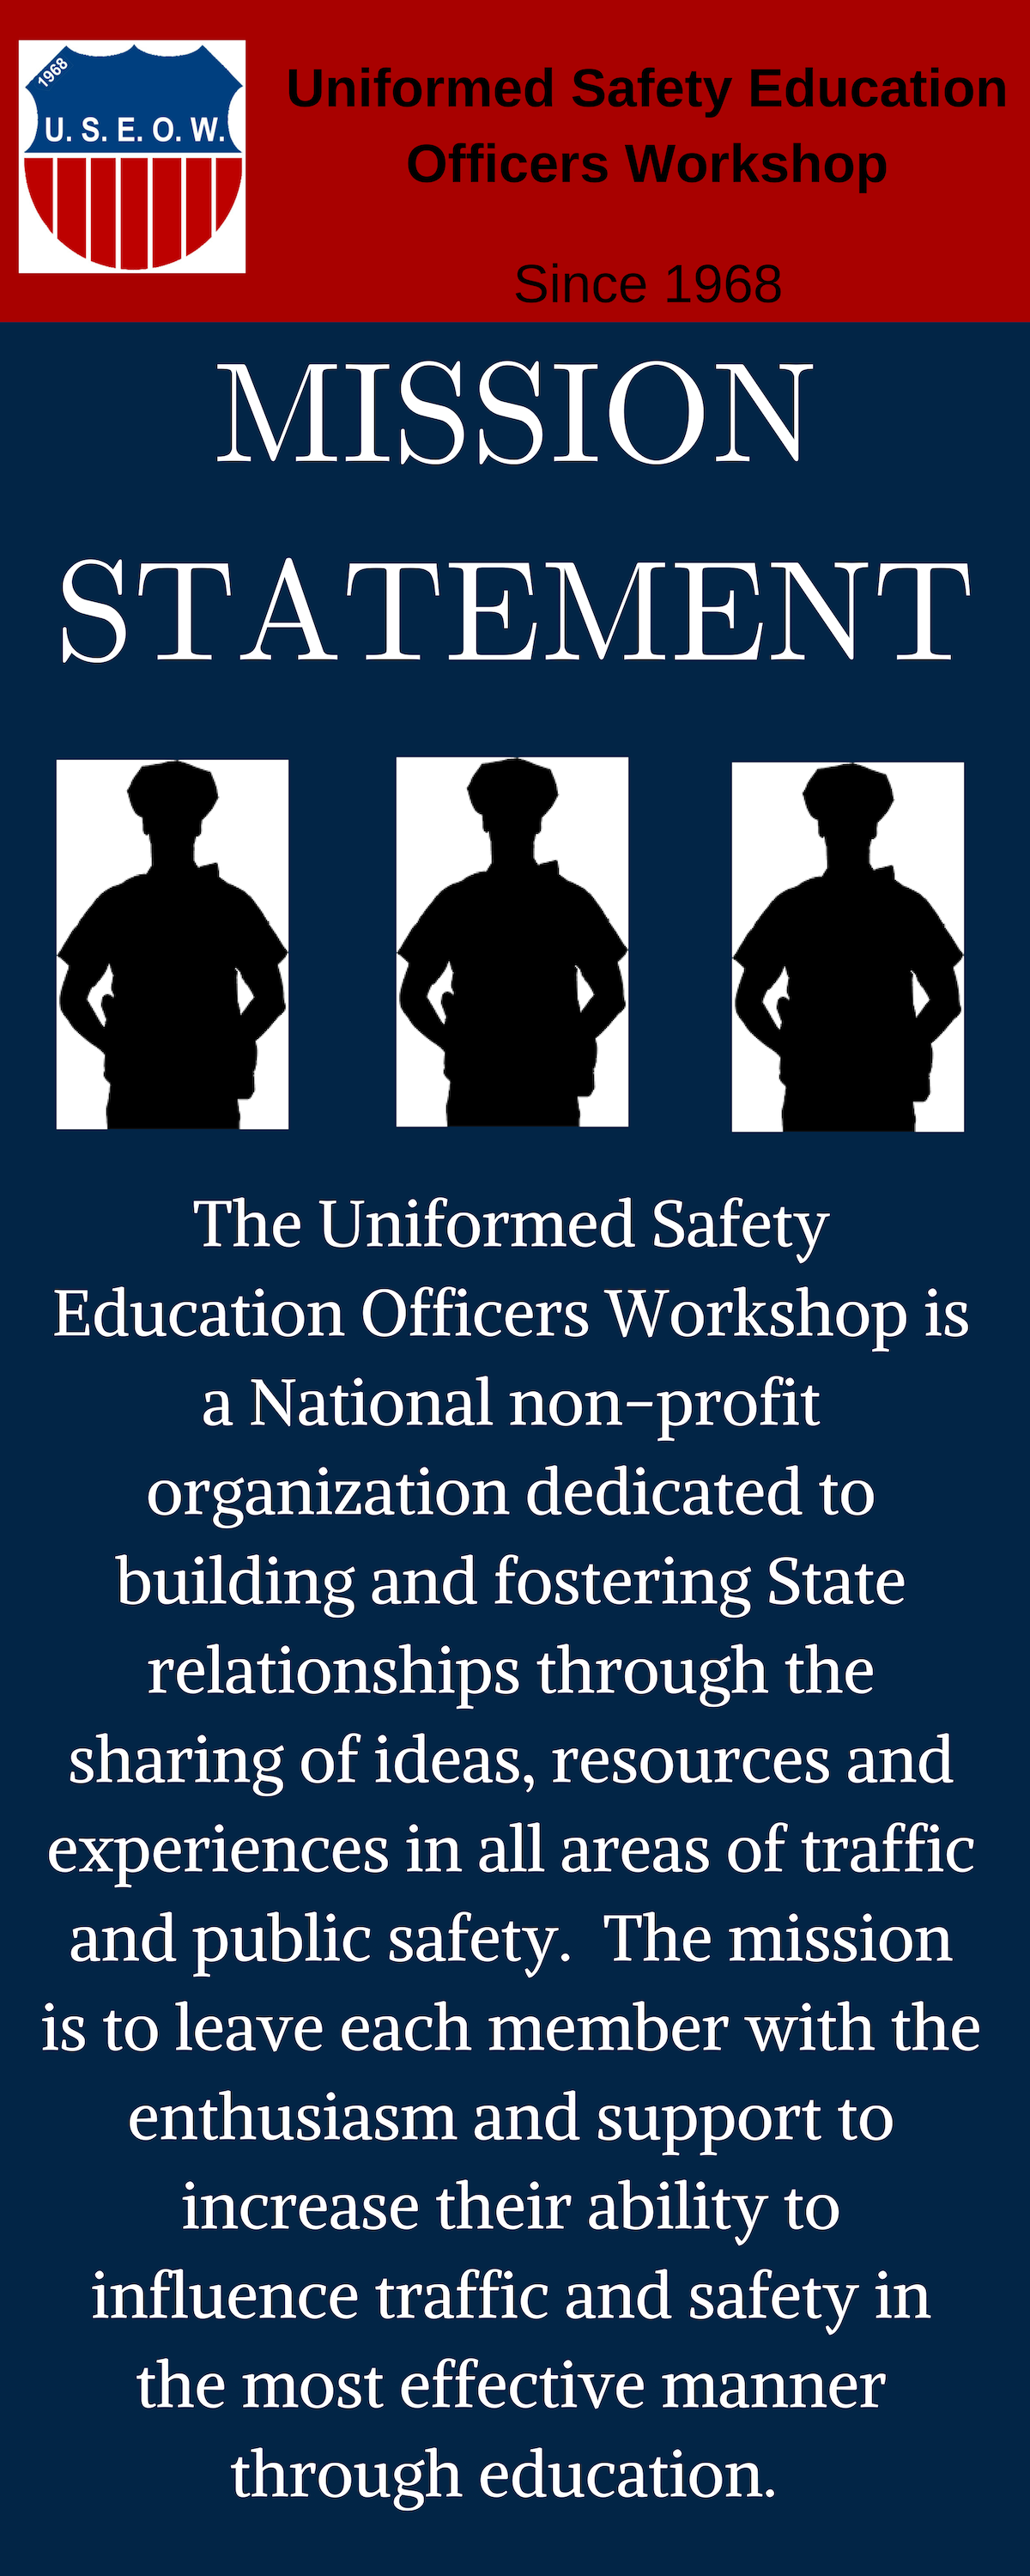 USEOW Mission Statement.png